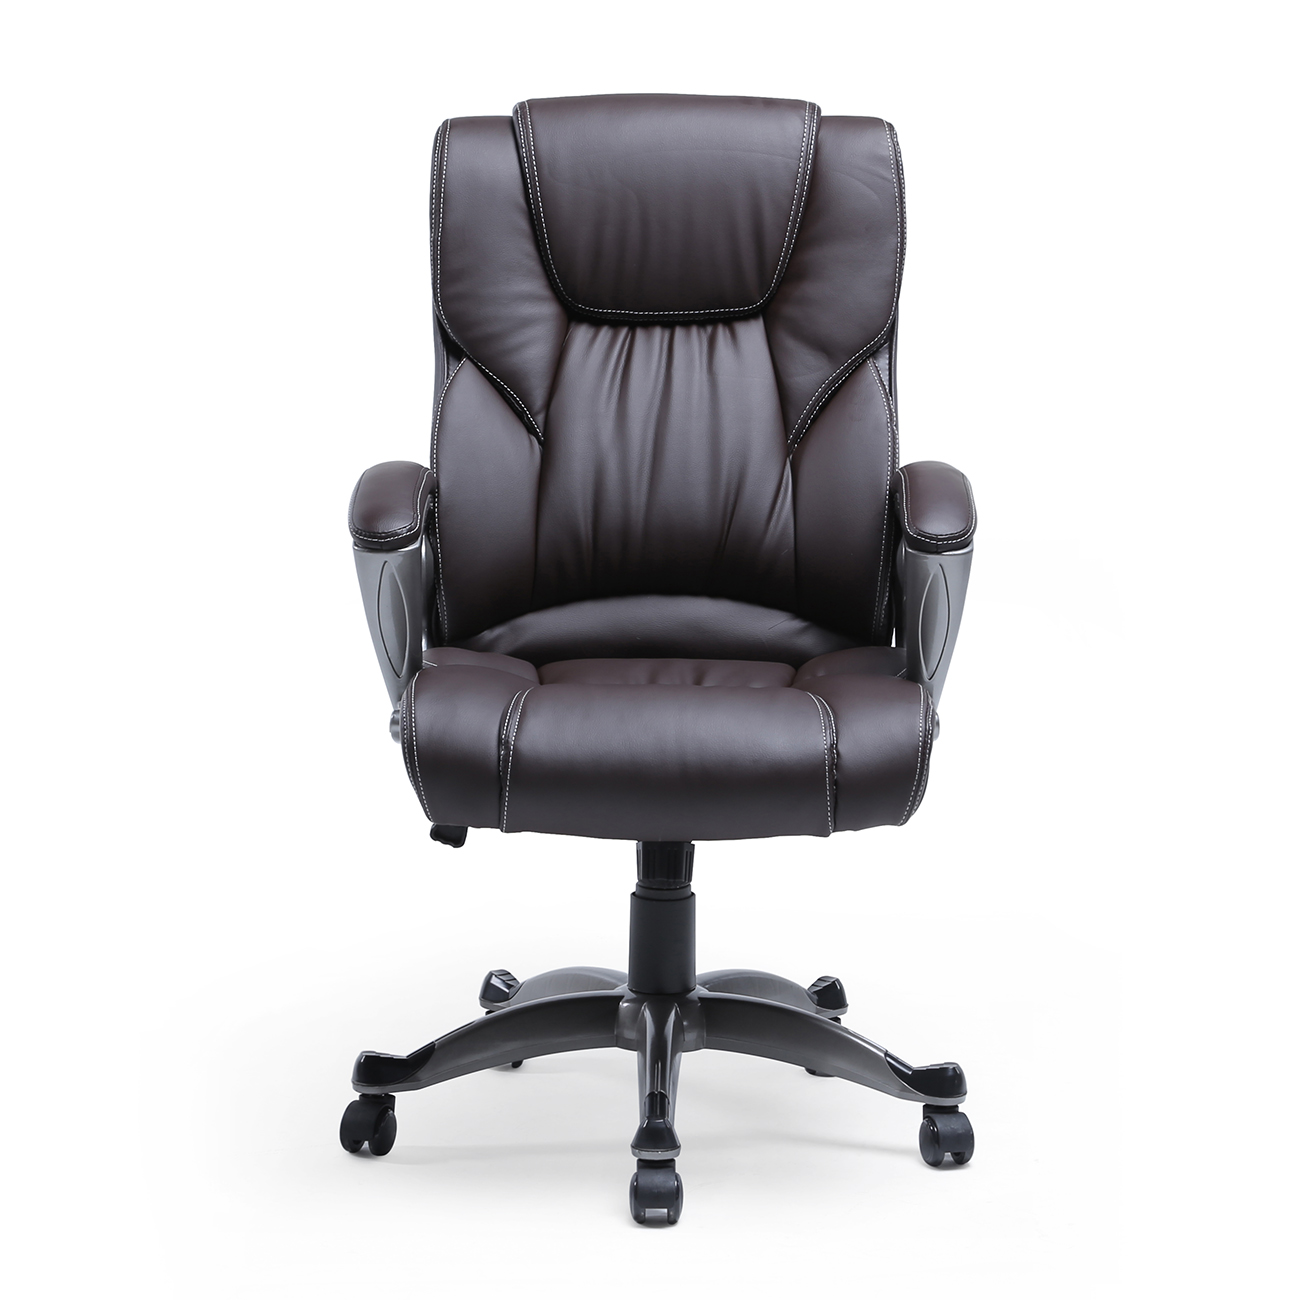 Luxury High Brown PU Leather Executive Office Chair Desk Task Computer Boss